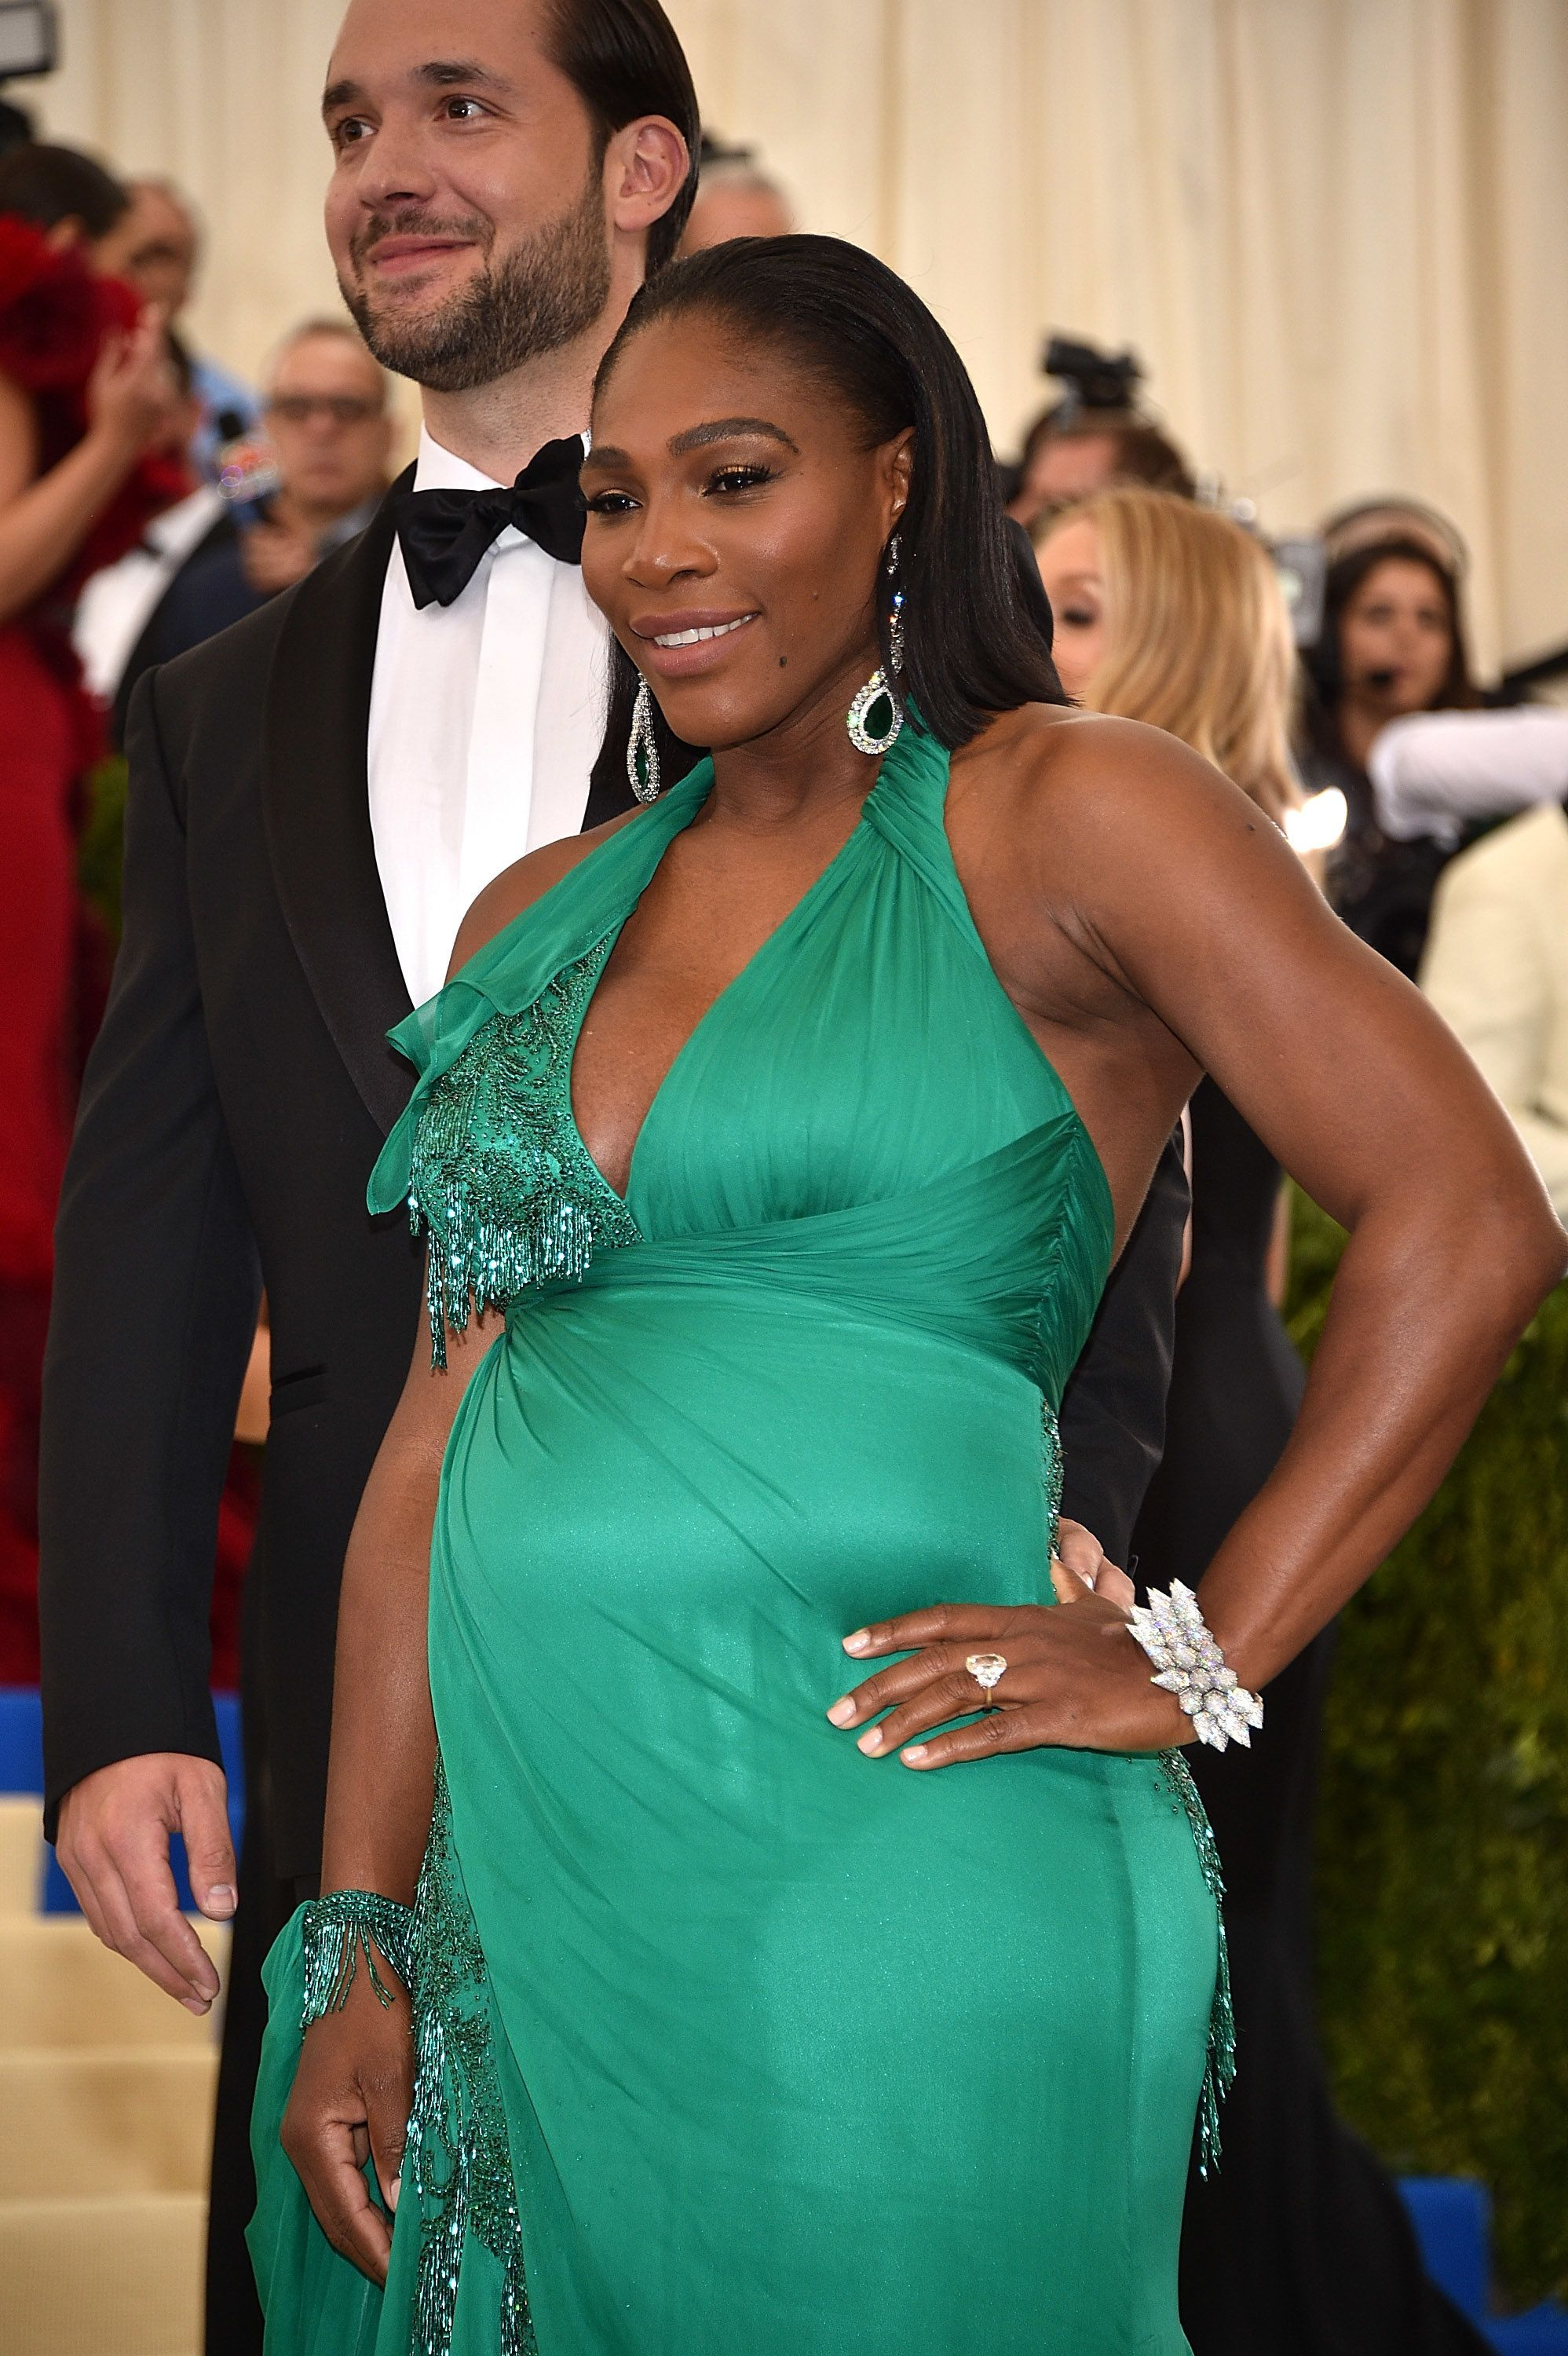 NEW YORK, NY - MAY 01:  Serena Williams attends the 'Rei Kawakubo/Comme des Garcons: Art Of The In-Between' Costume Institute Gala at Metropolitan Museum of Art on May 1, 2017 in New York City.  (Photo by Kevin Mazur/WireImage)